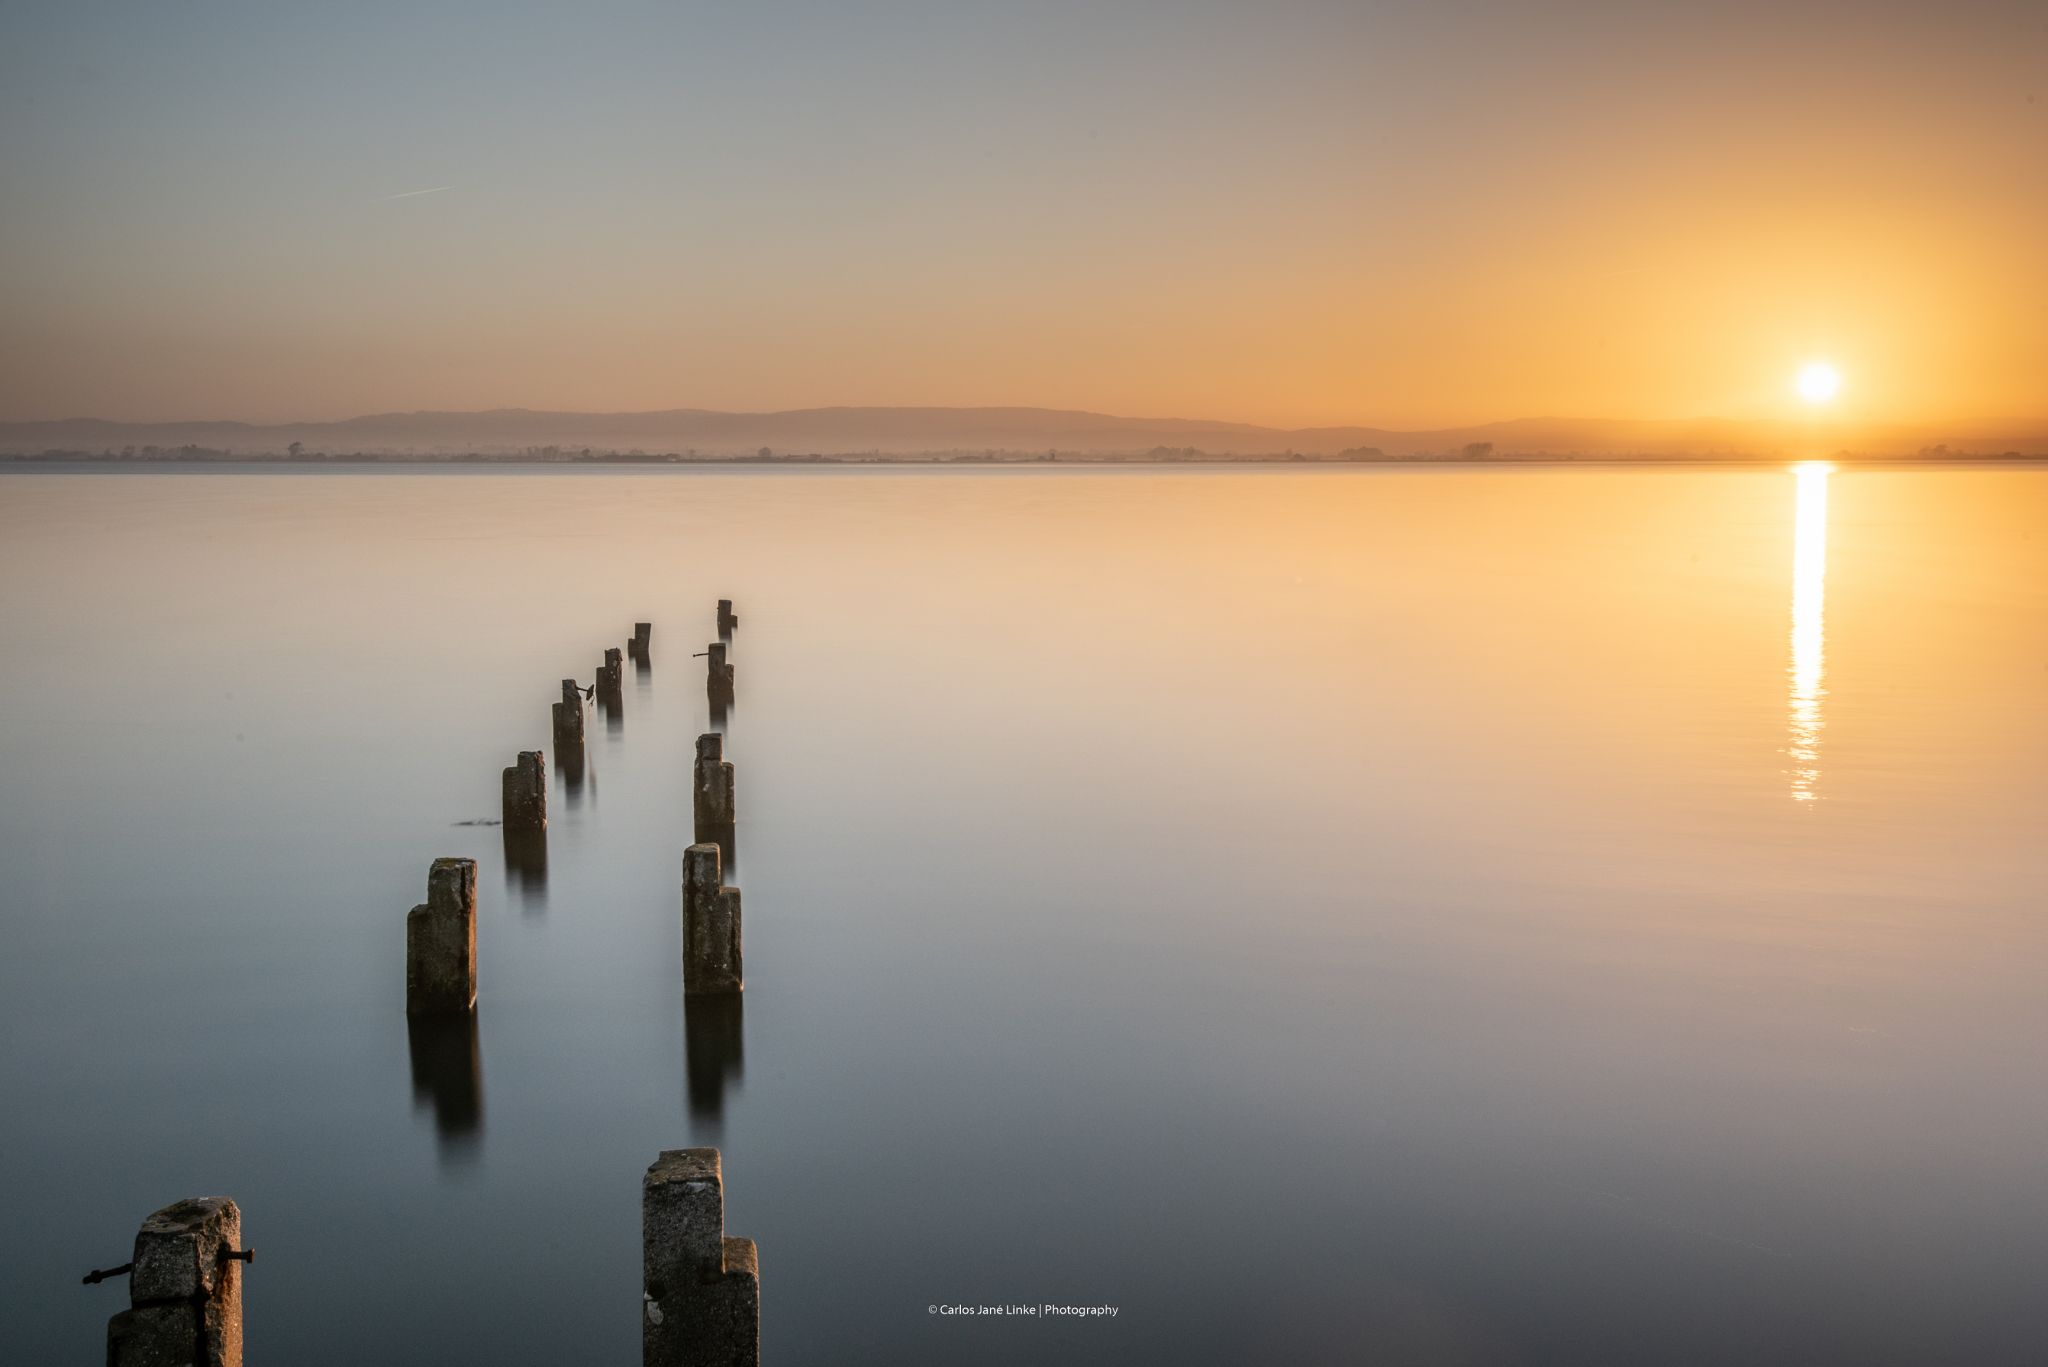 Relaxed sunrise, Portugal